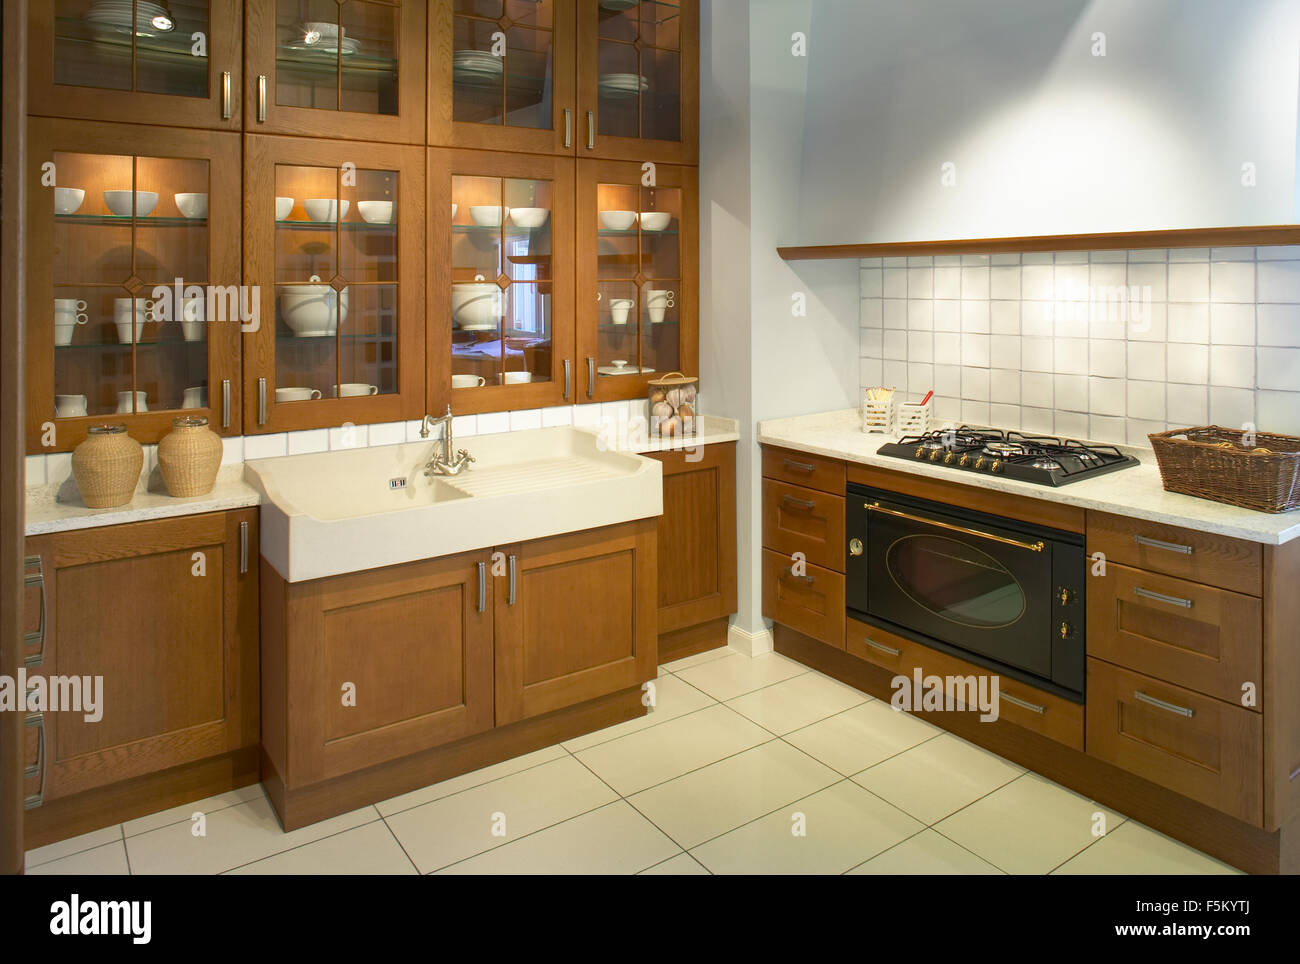 View Of A Domestic Modern Kitchen With Cabinets Drawers And